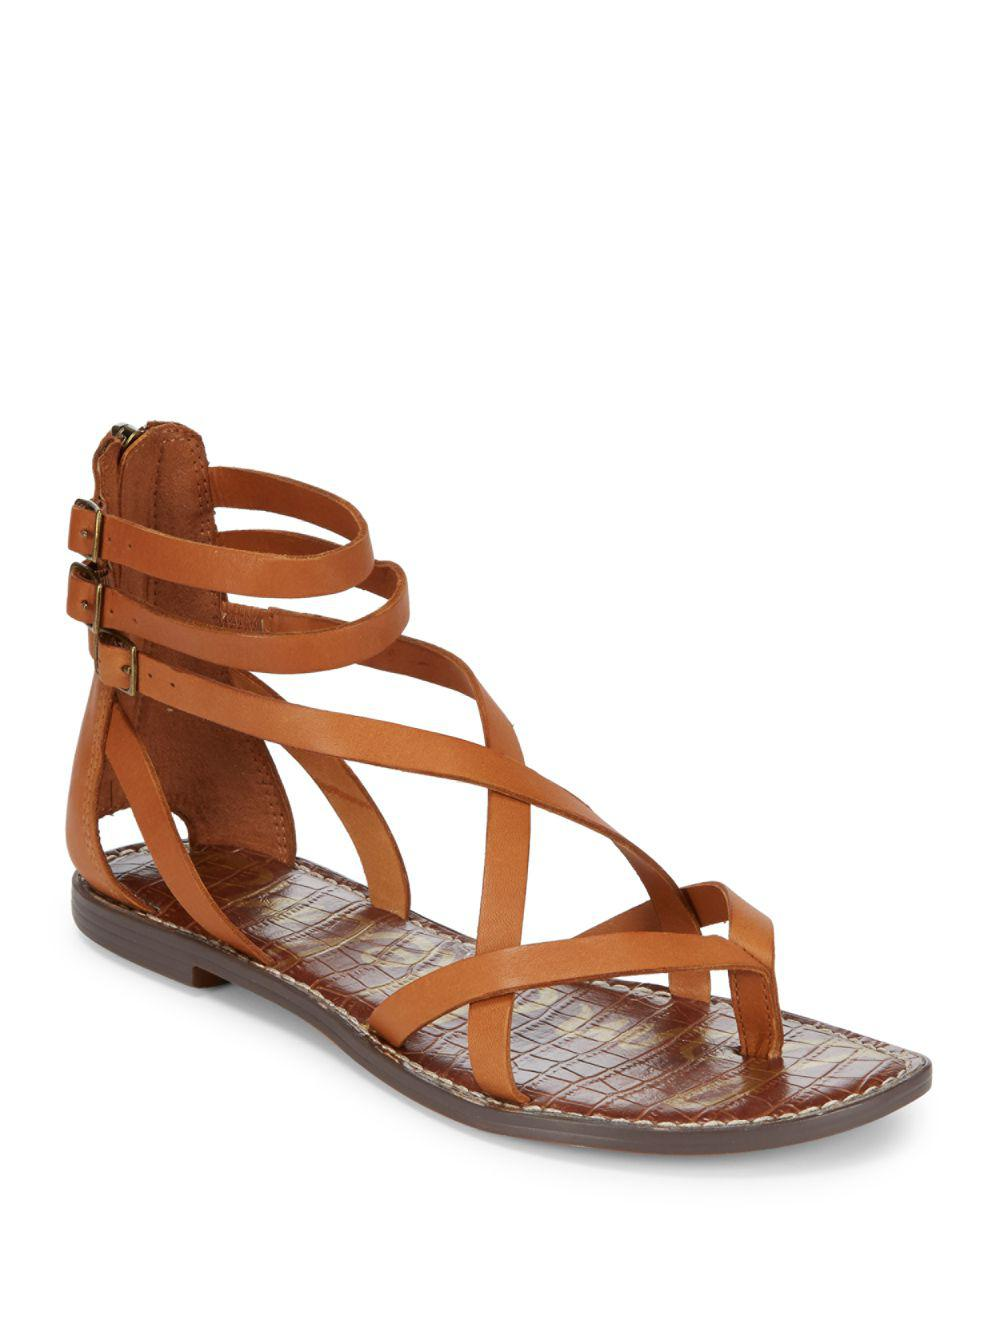 4a18acdee5d5b3 Lyst - Sam Edelman Gallagher Leather Flat Sandals in Brown